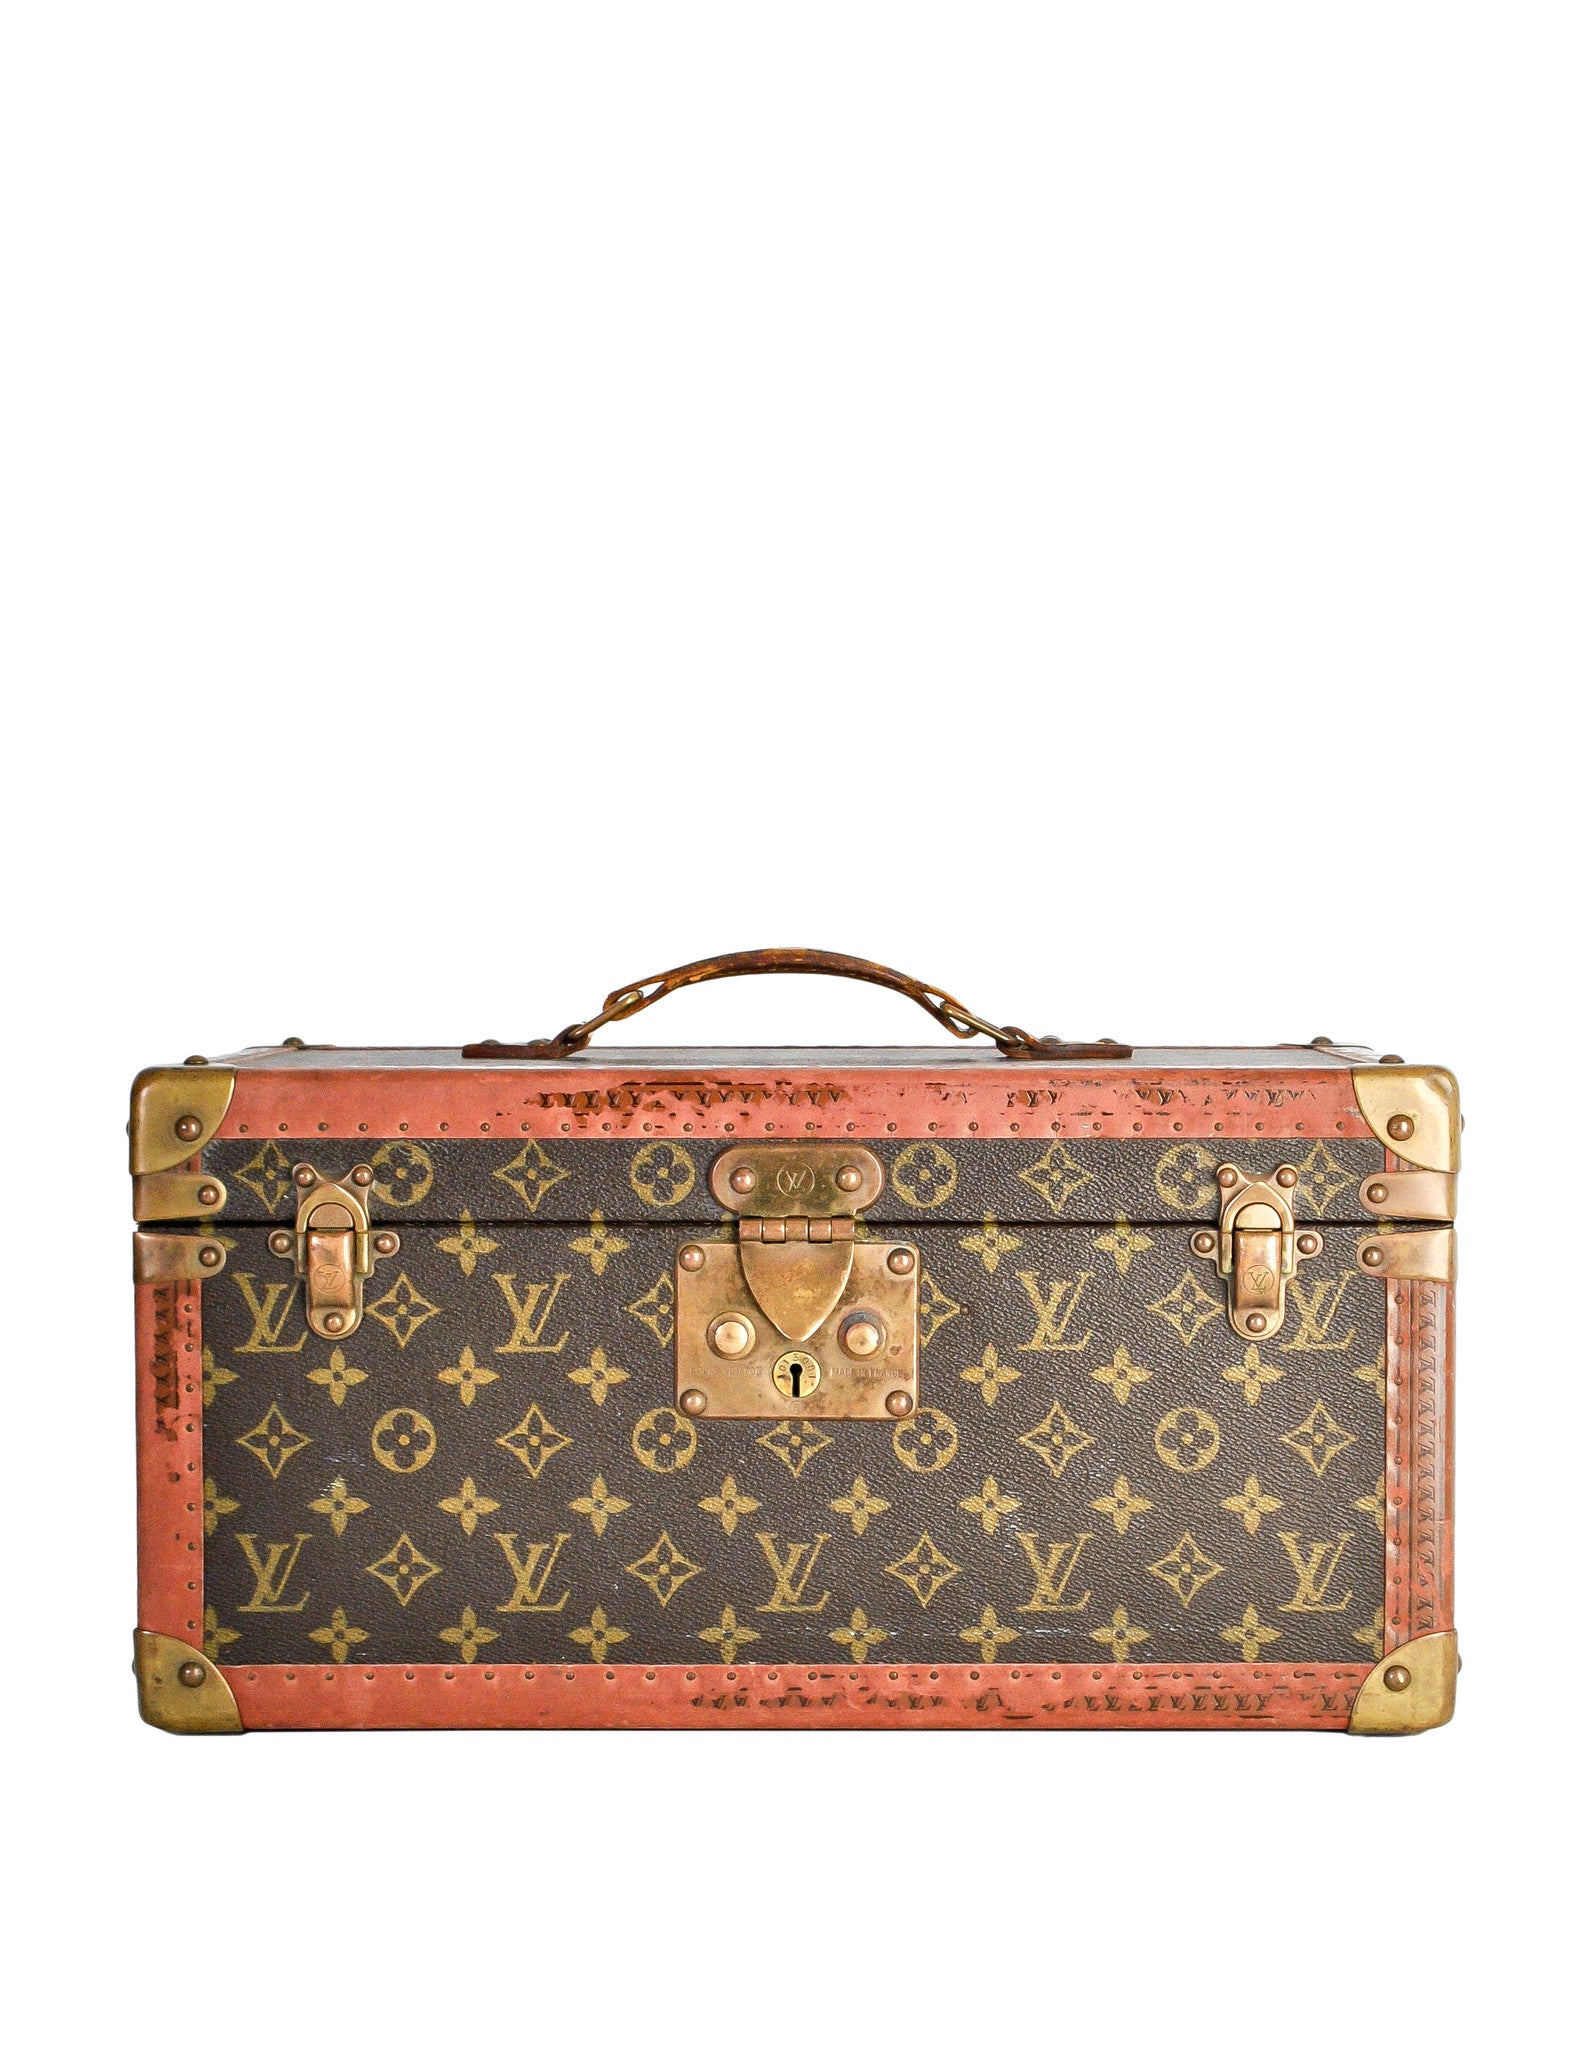 Louis Vuitton Vintage Monogram Train Case - Amarcord Vintage Fashion  - 1